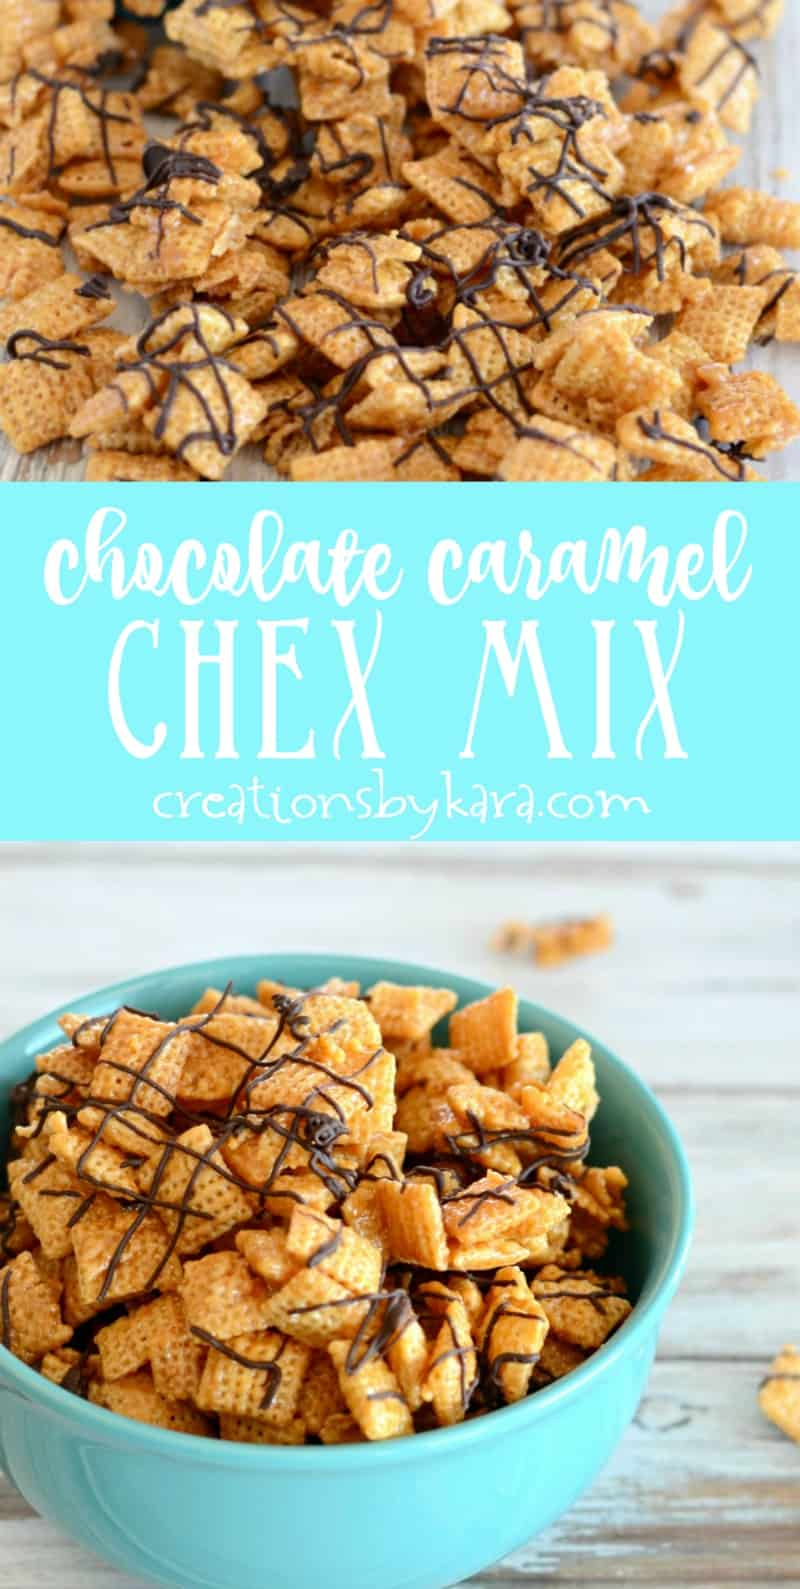 Easy Chocolate Caramel Chex Mix - make this snack mix as crunchy as you like by adjusting the cooking time. A perfect recipe for caramel lovers! #chexmix #snackmix #caramel #easyrecipe